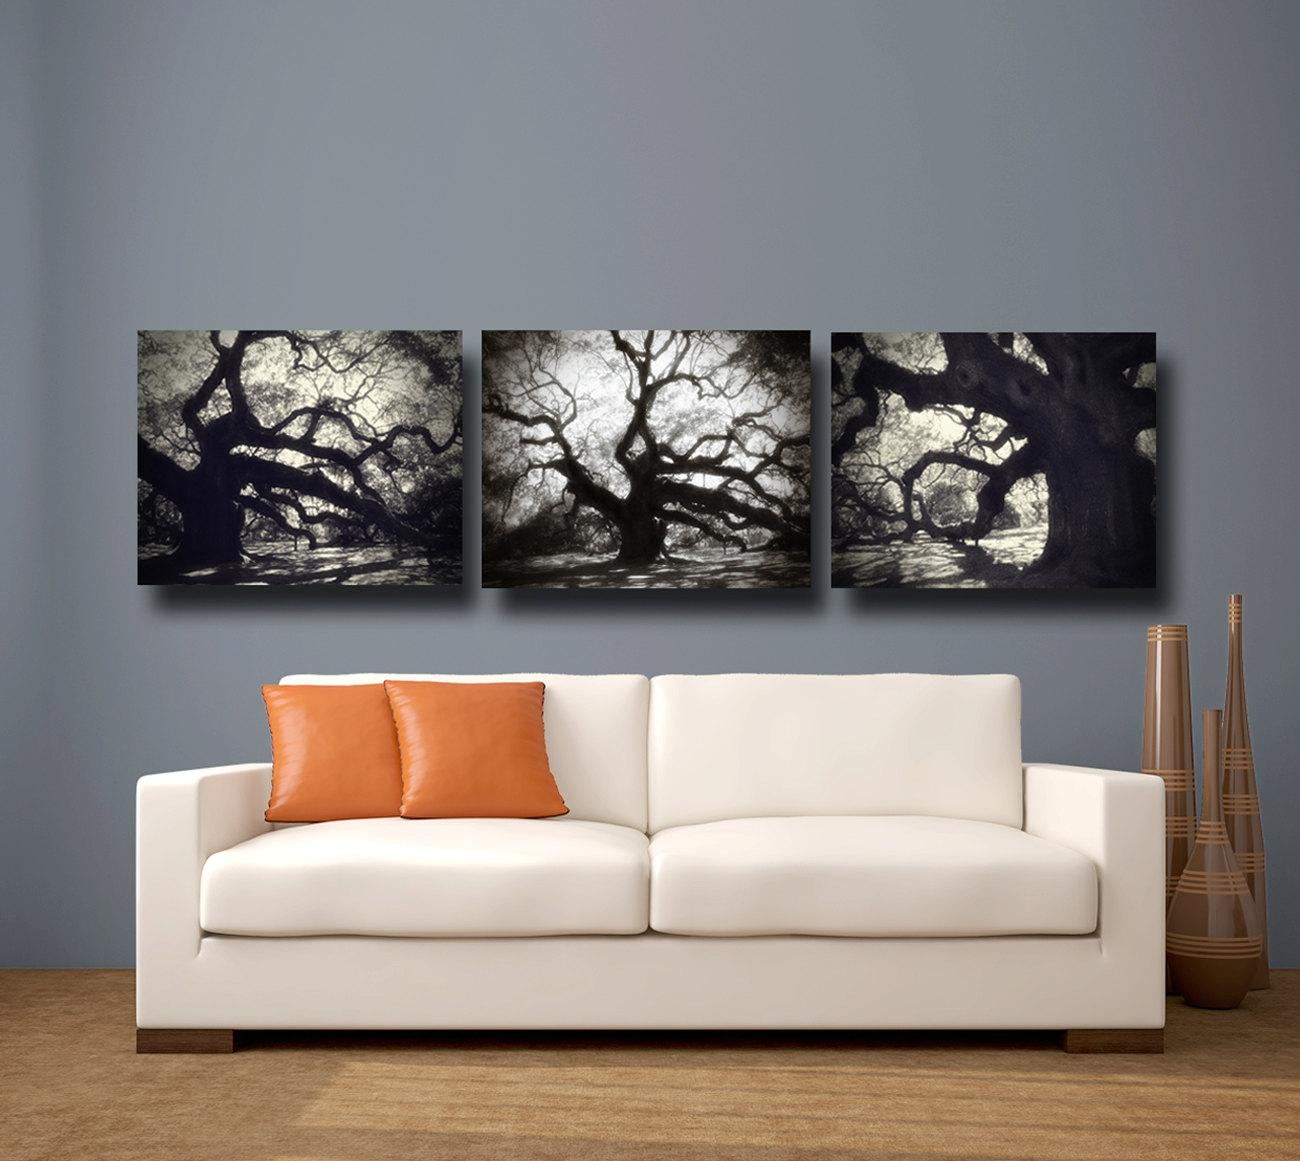 Wall Art Designs: Wall Canvas Art On Demand Free Printable Cheap Inside 3 Set Canvas Wall Art (Image 19 of 20)